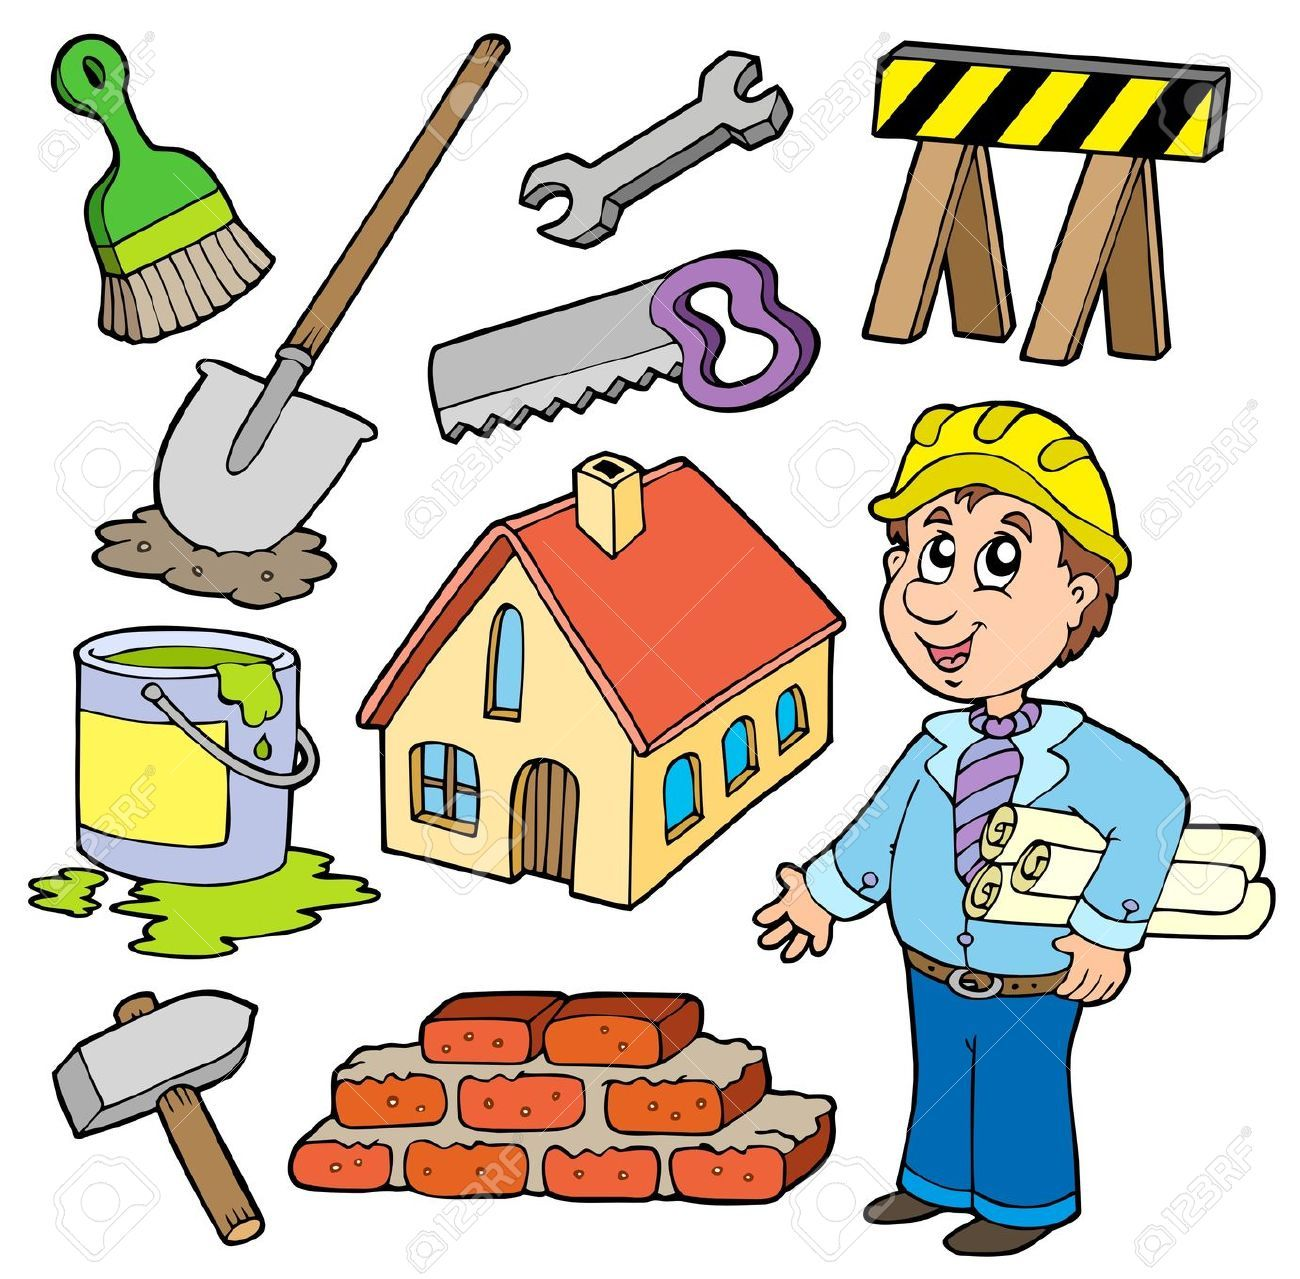 Building Renovation Clipart Clipground, Home Renovations Clip Art.